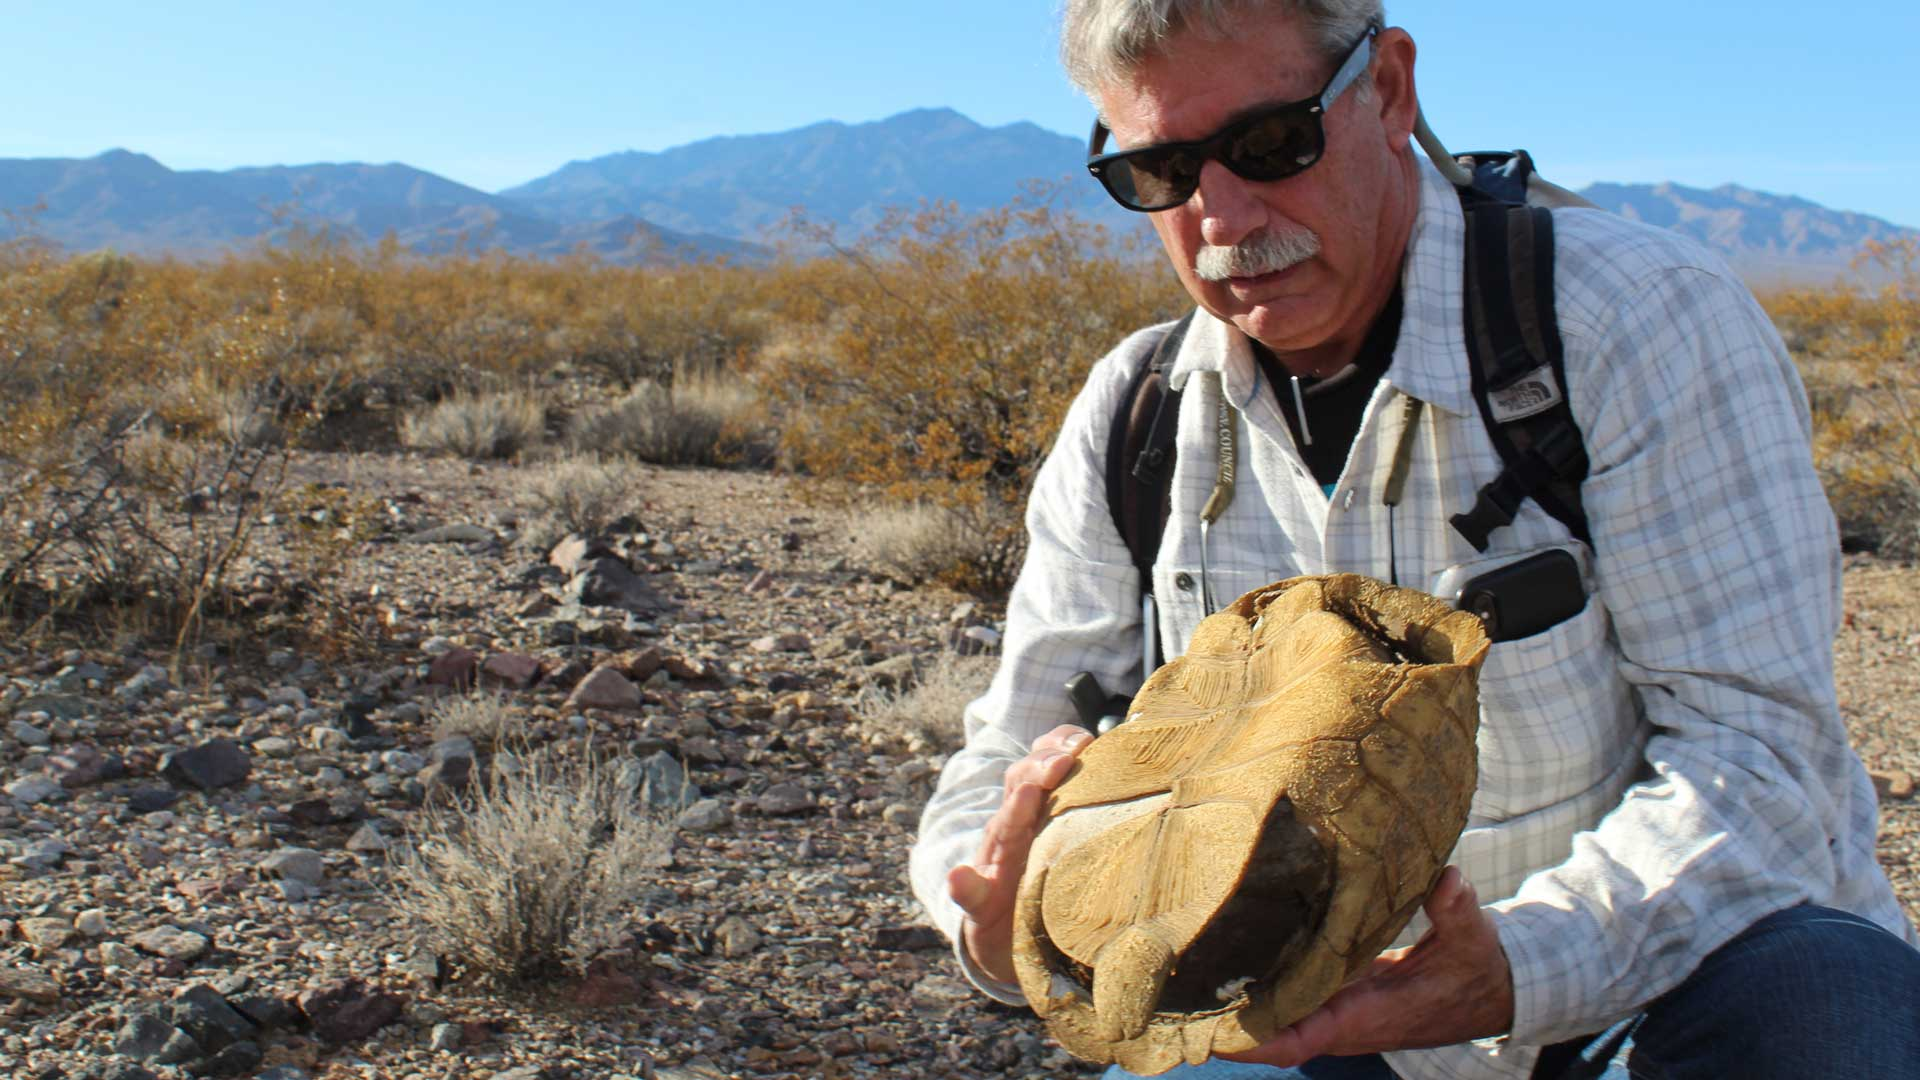 U.S. Geological Survey ecologist Todd Esque holds a tortoise shell in the Mojave Desert, south of Las Vegas.